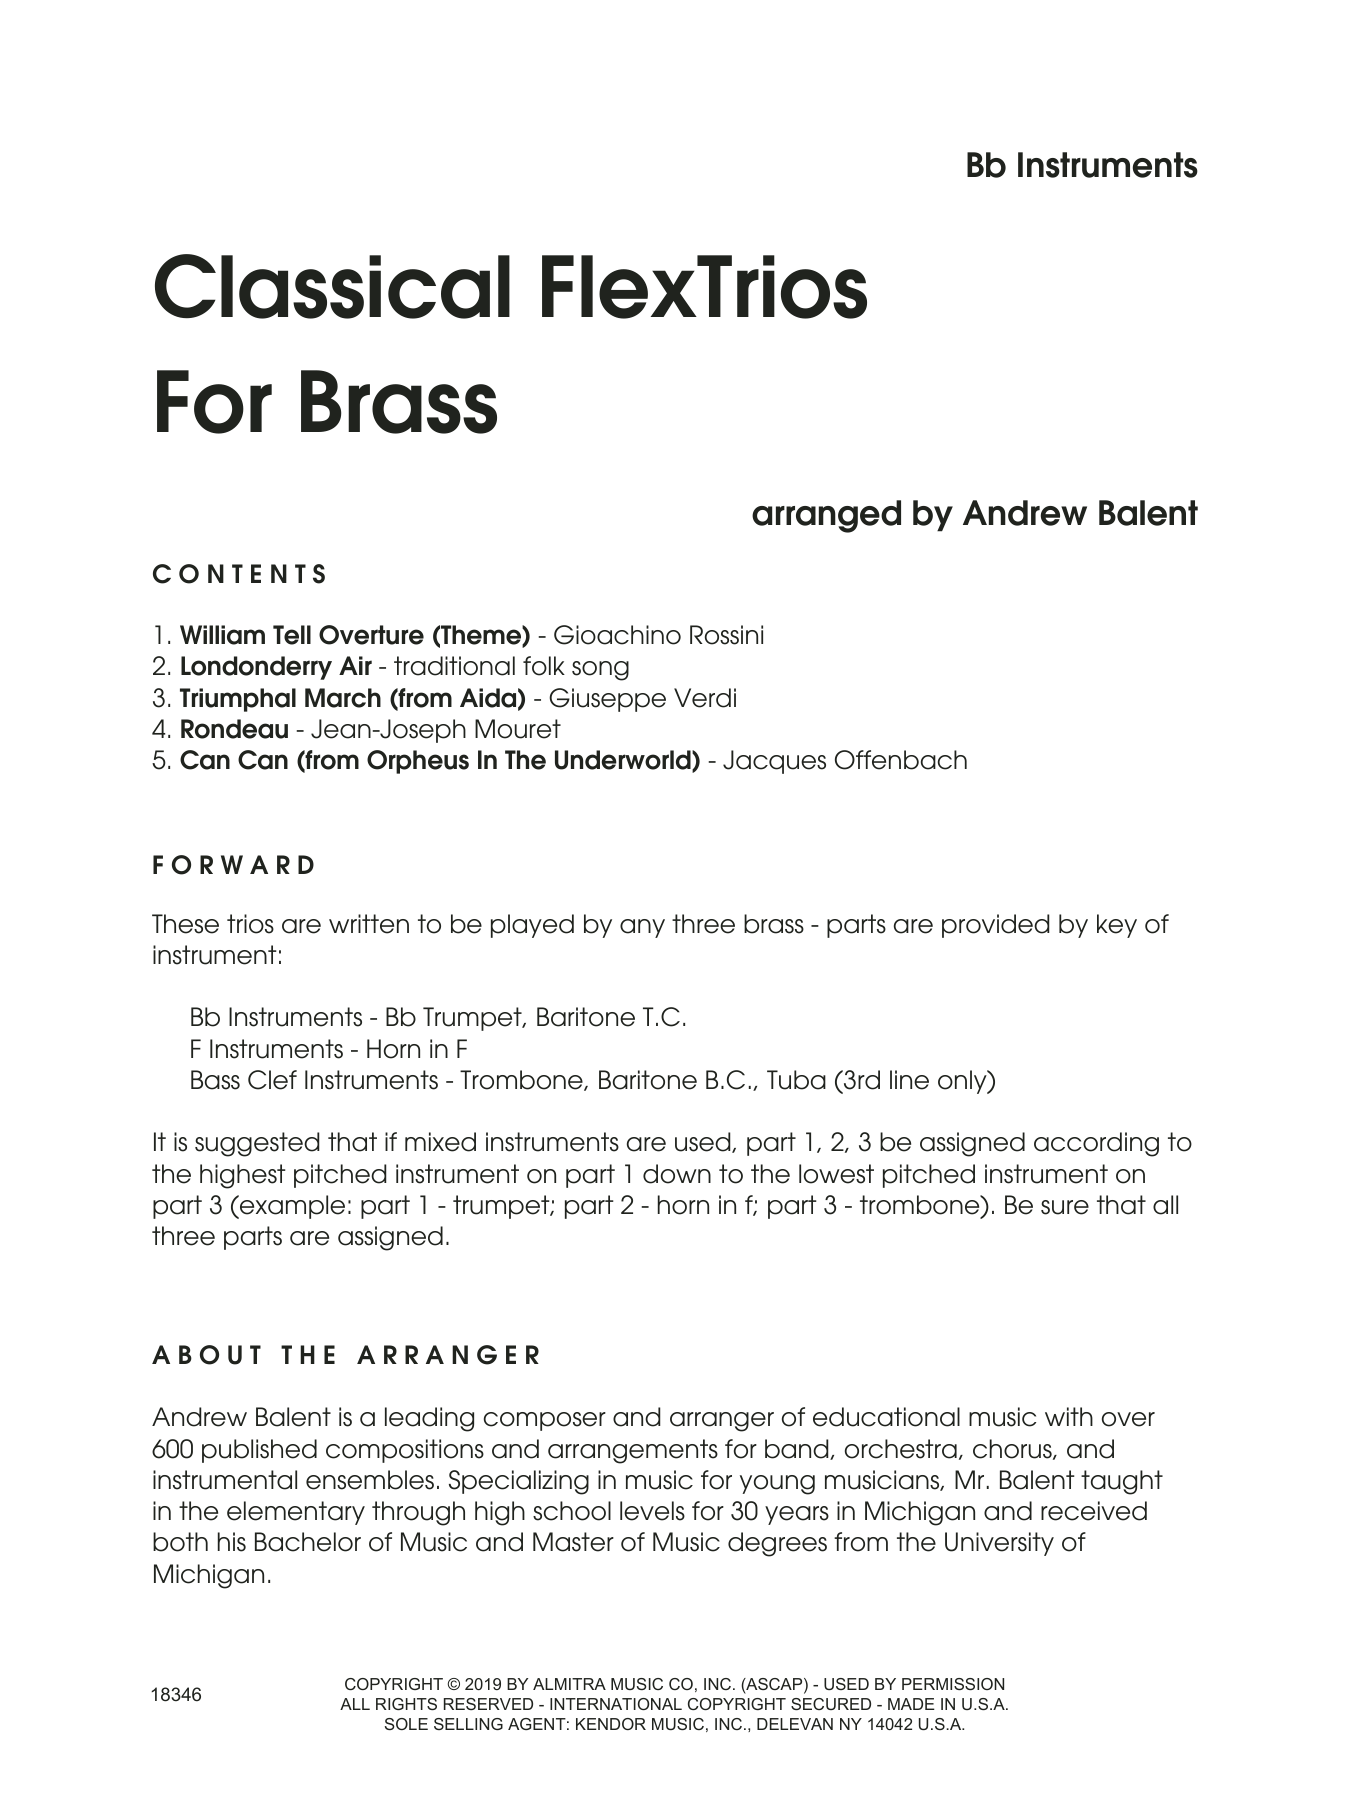 Classical Flextrios For Brass (arr. Andrew Balent) - Bb Instruments Sheet Music